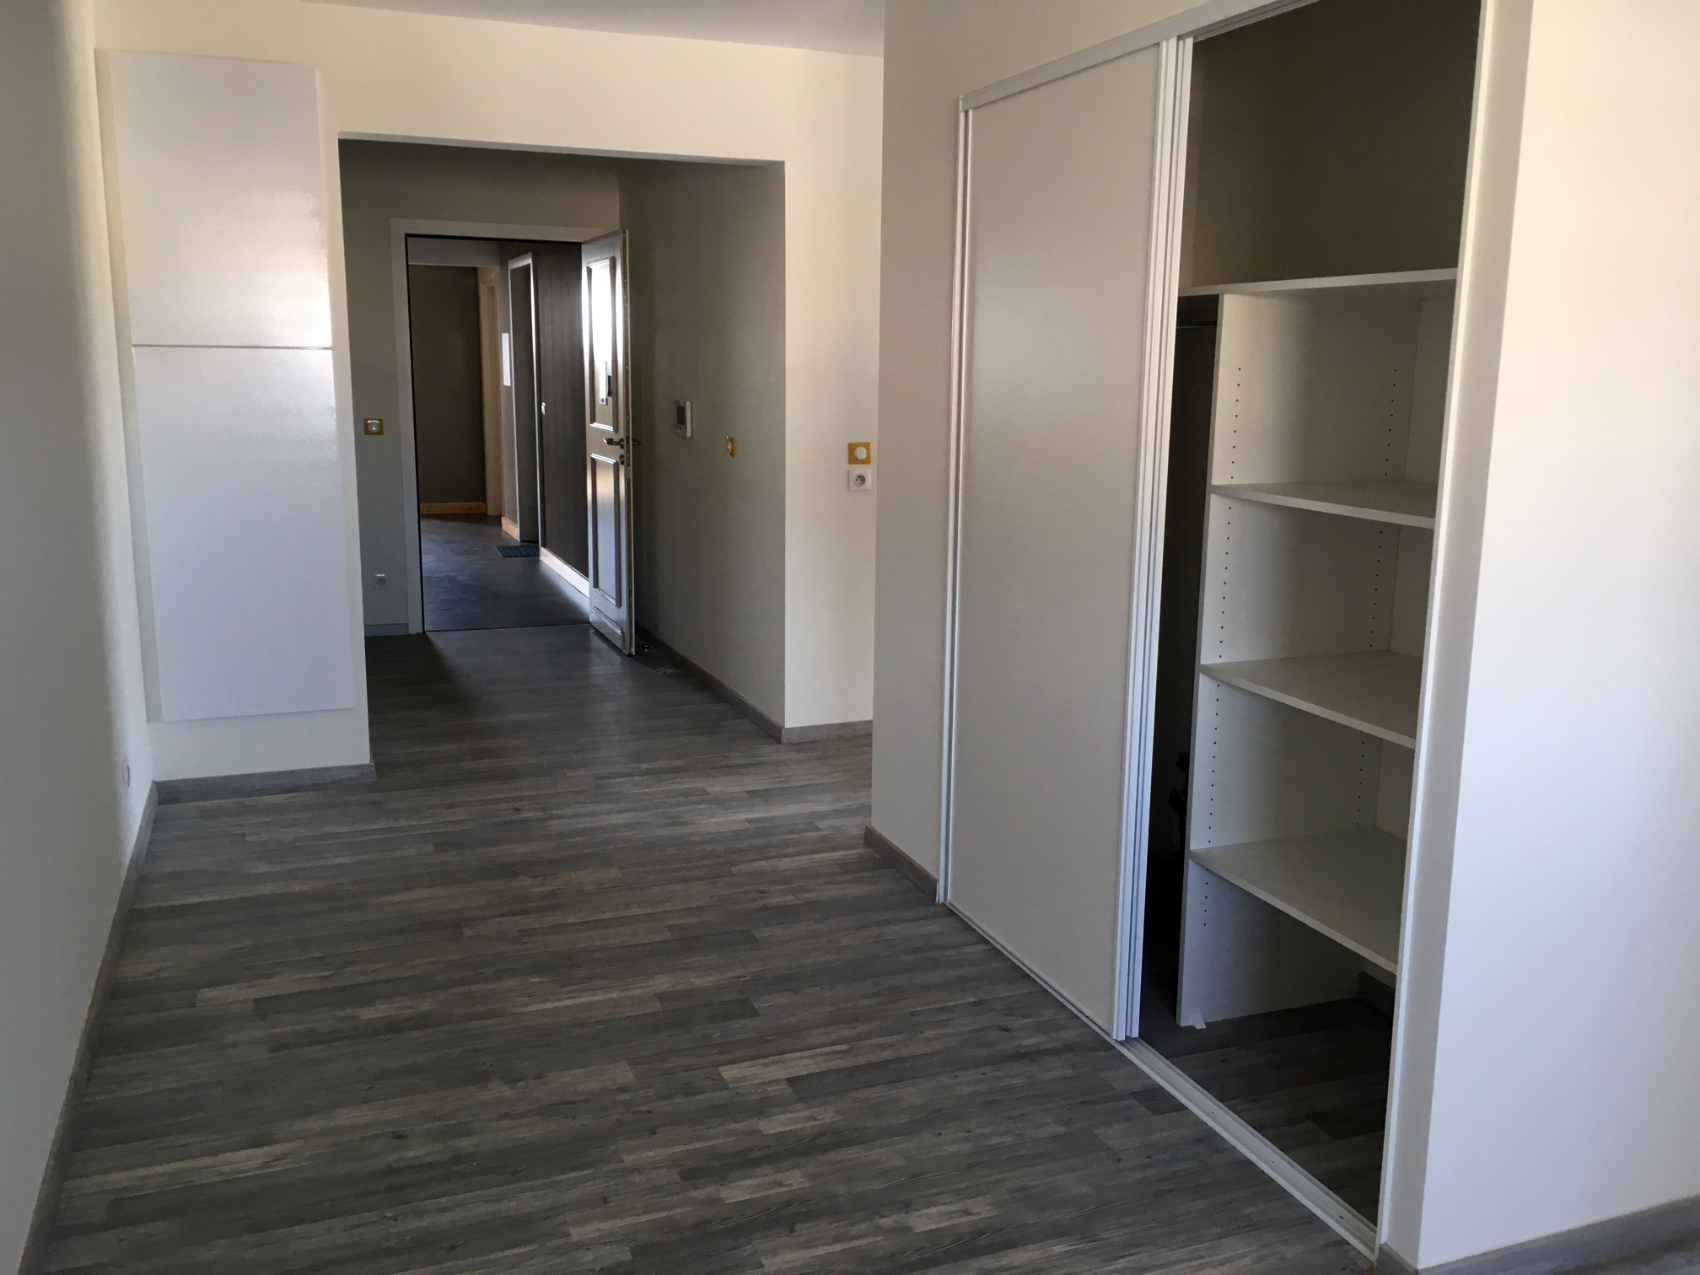 IMG-PRI-Girondines-appartements024-G.ATHANASE_10-2017-CC